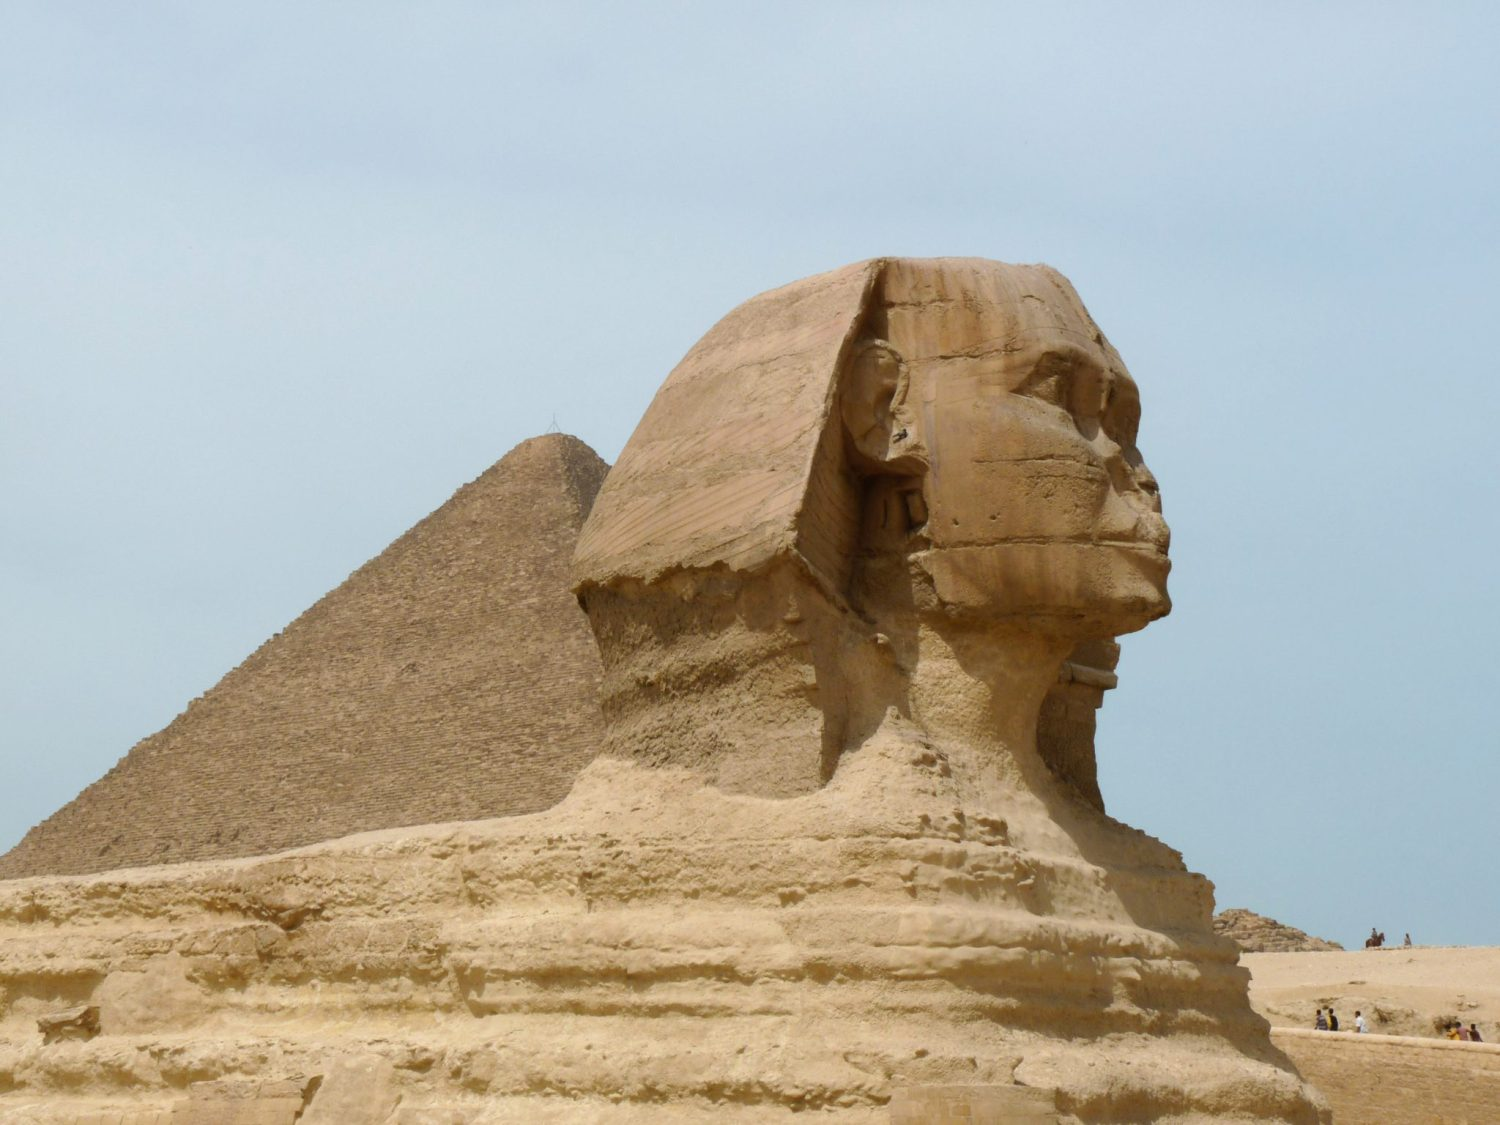 Egypt, Ginza, Pyramids, Cairo, Abercrombie and kent